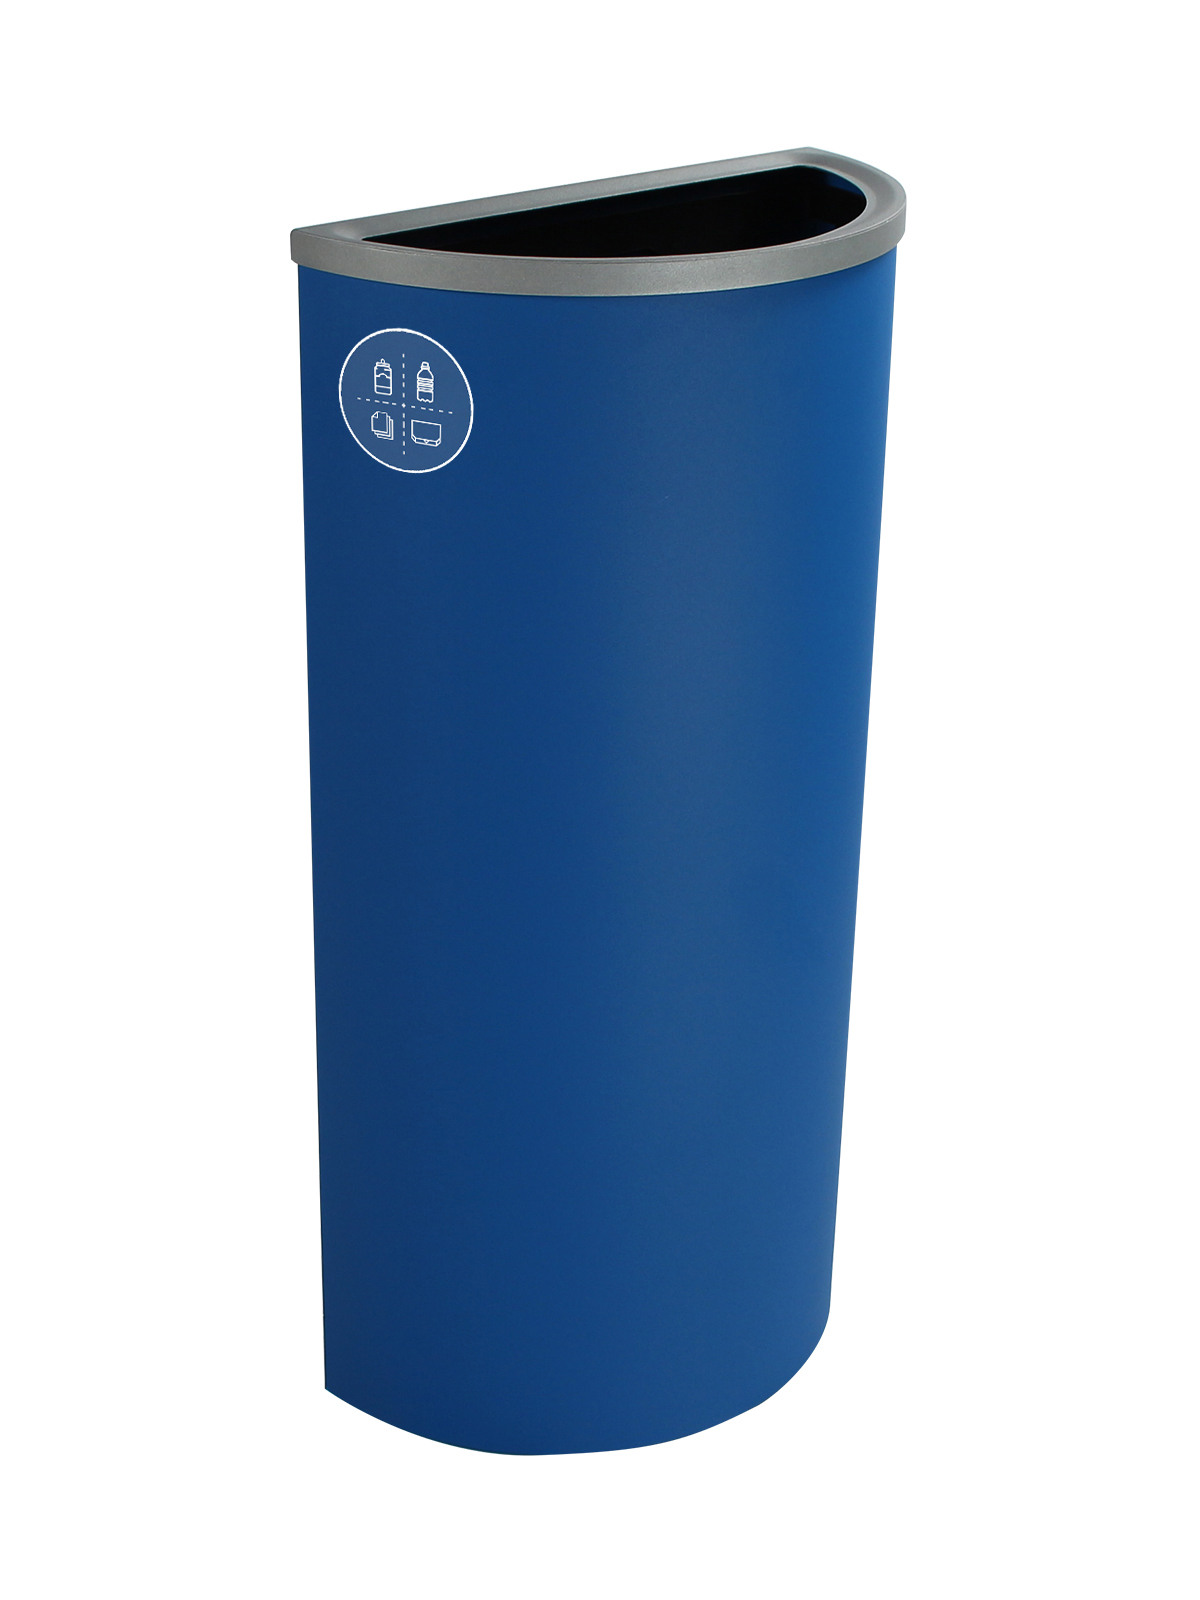 SPECTRUM - Single - Ellipse Slim - Mixed Recyclables - Full - Blue